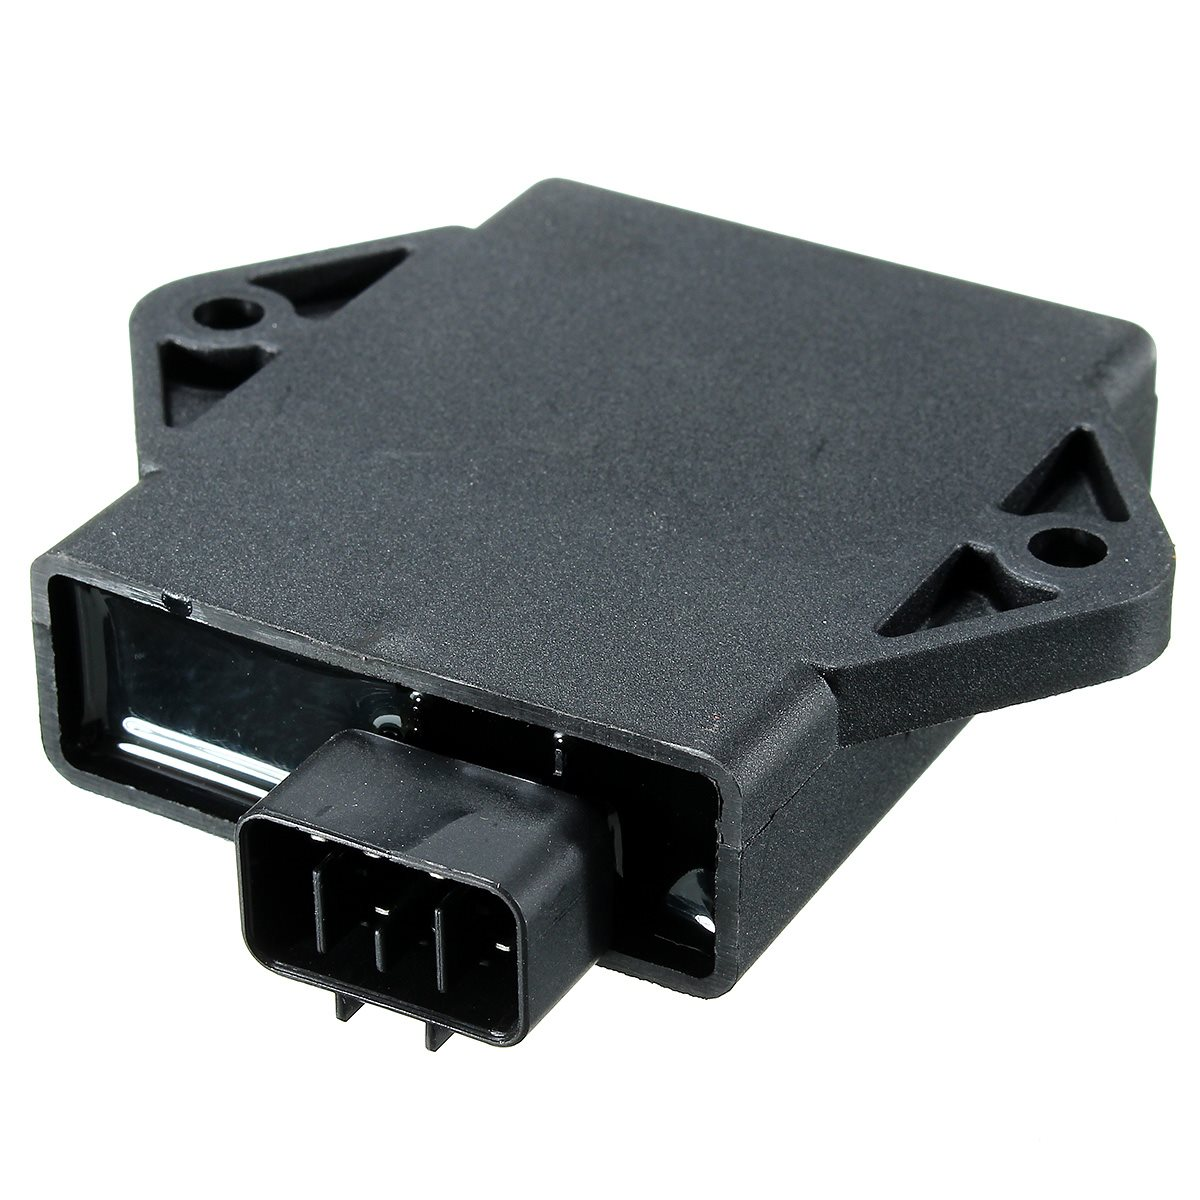 High Performance Motorcycle CDI Box for Yamaha YFM250 Bear Tracker 2x4 2001  2002 2003 2004 Plastic Black-in Motorbike Ingition from Automobiles ...